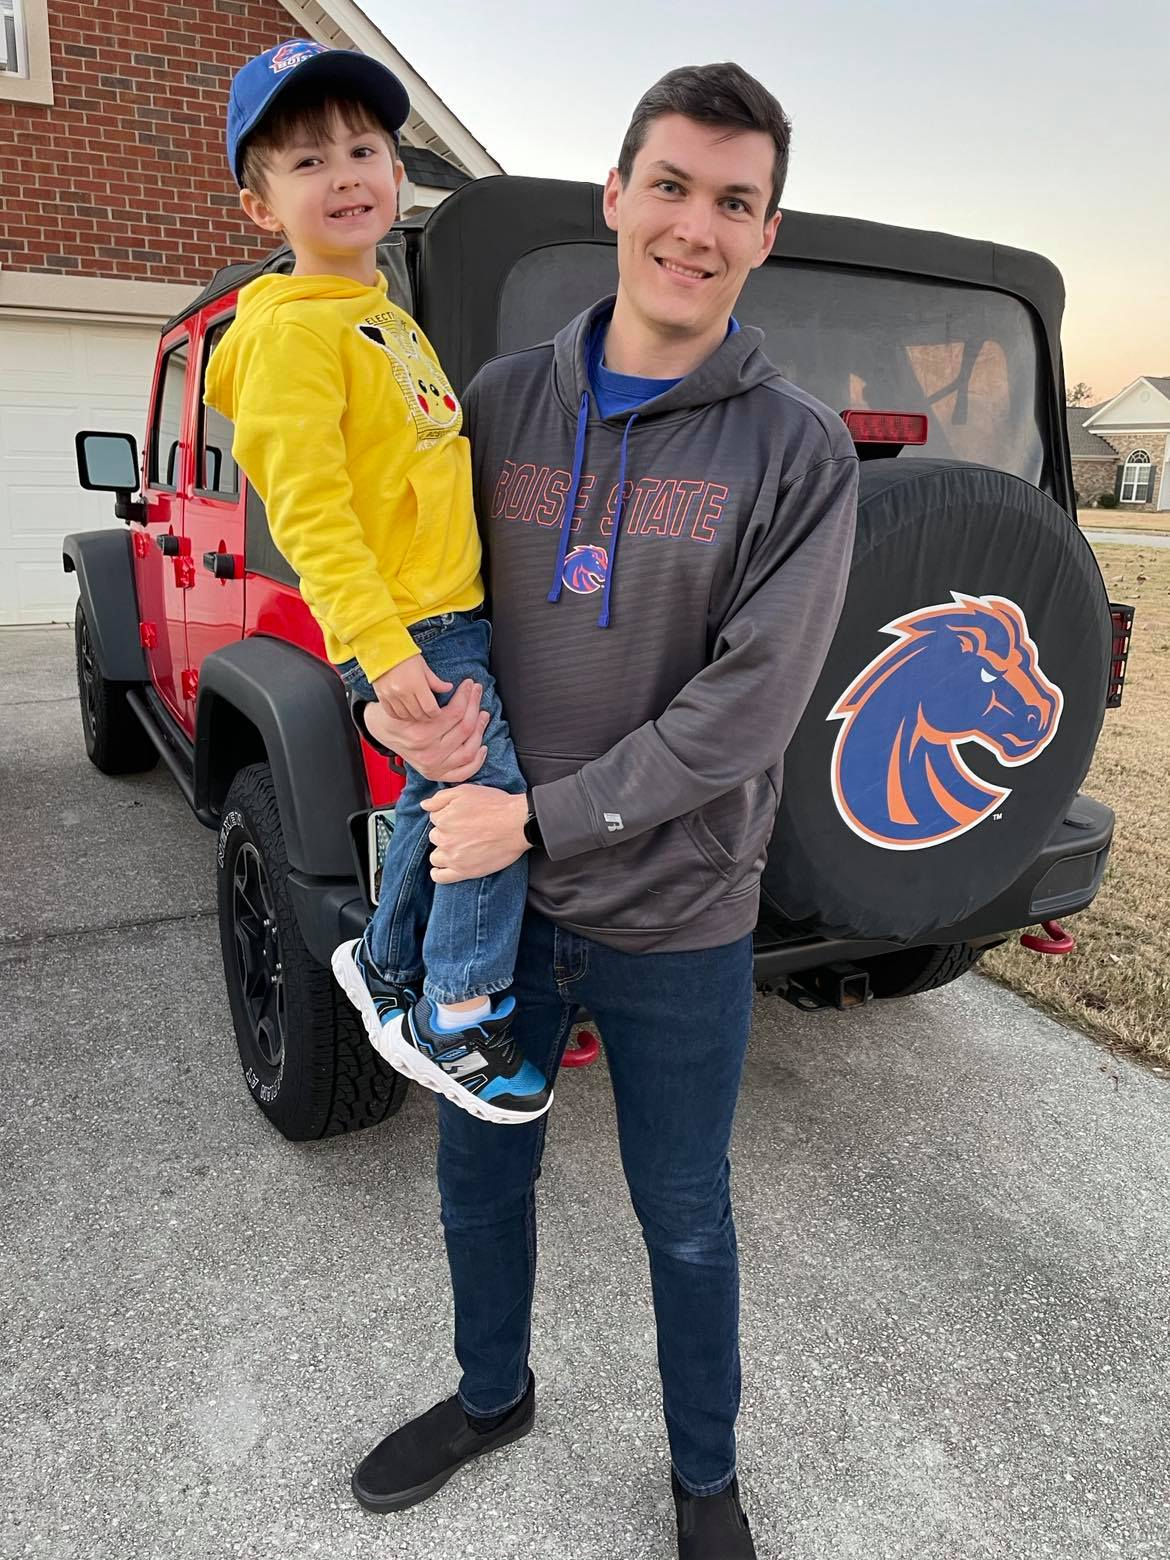 Austin Richardson poses with son in front of a house.